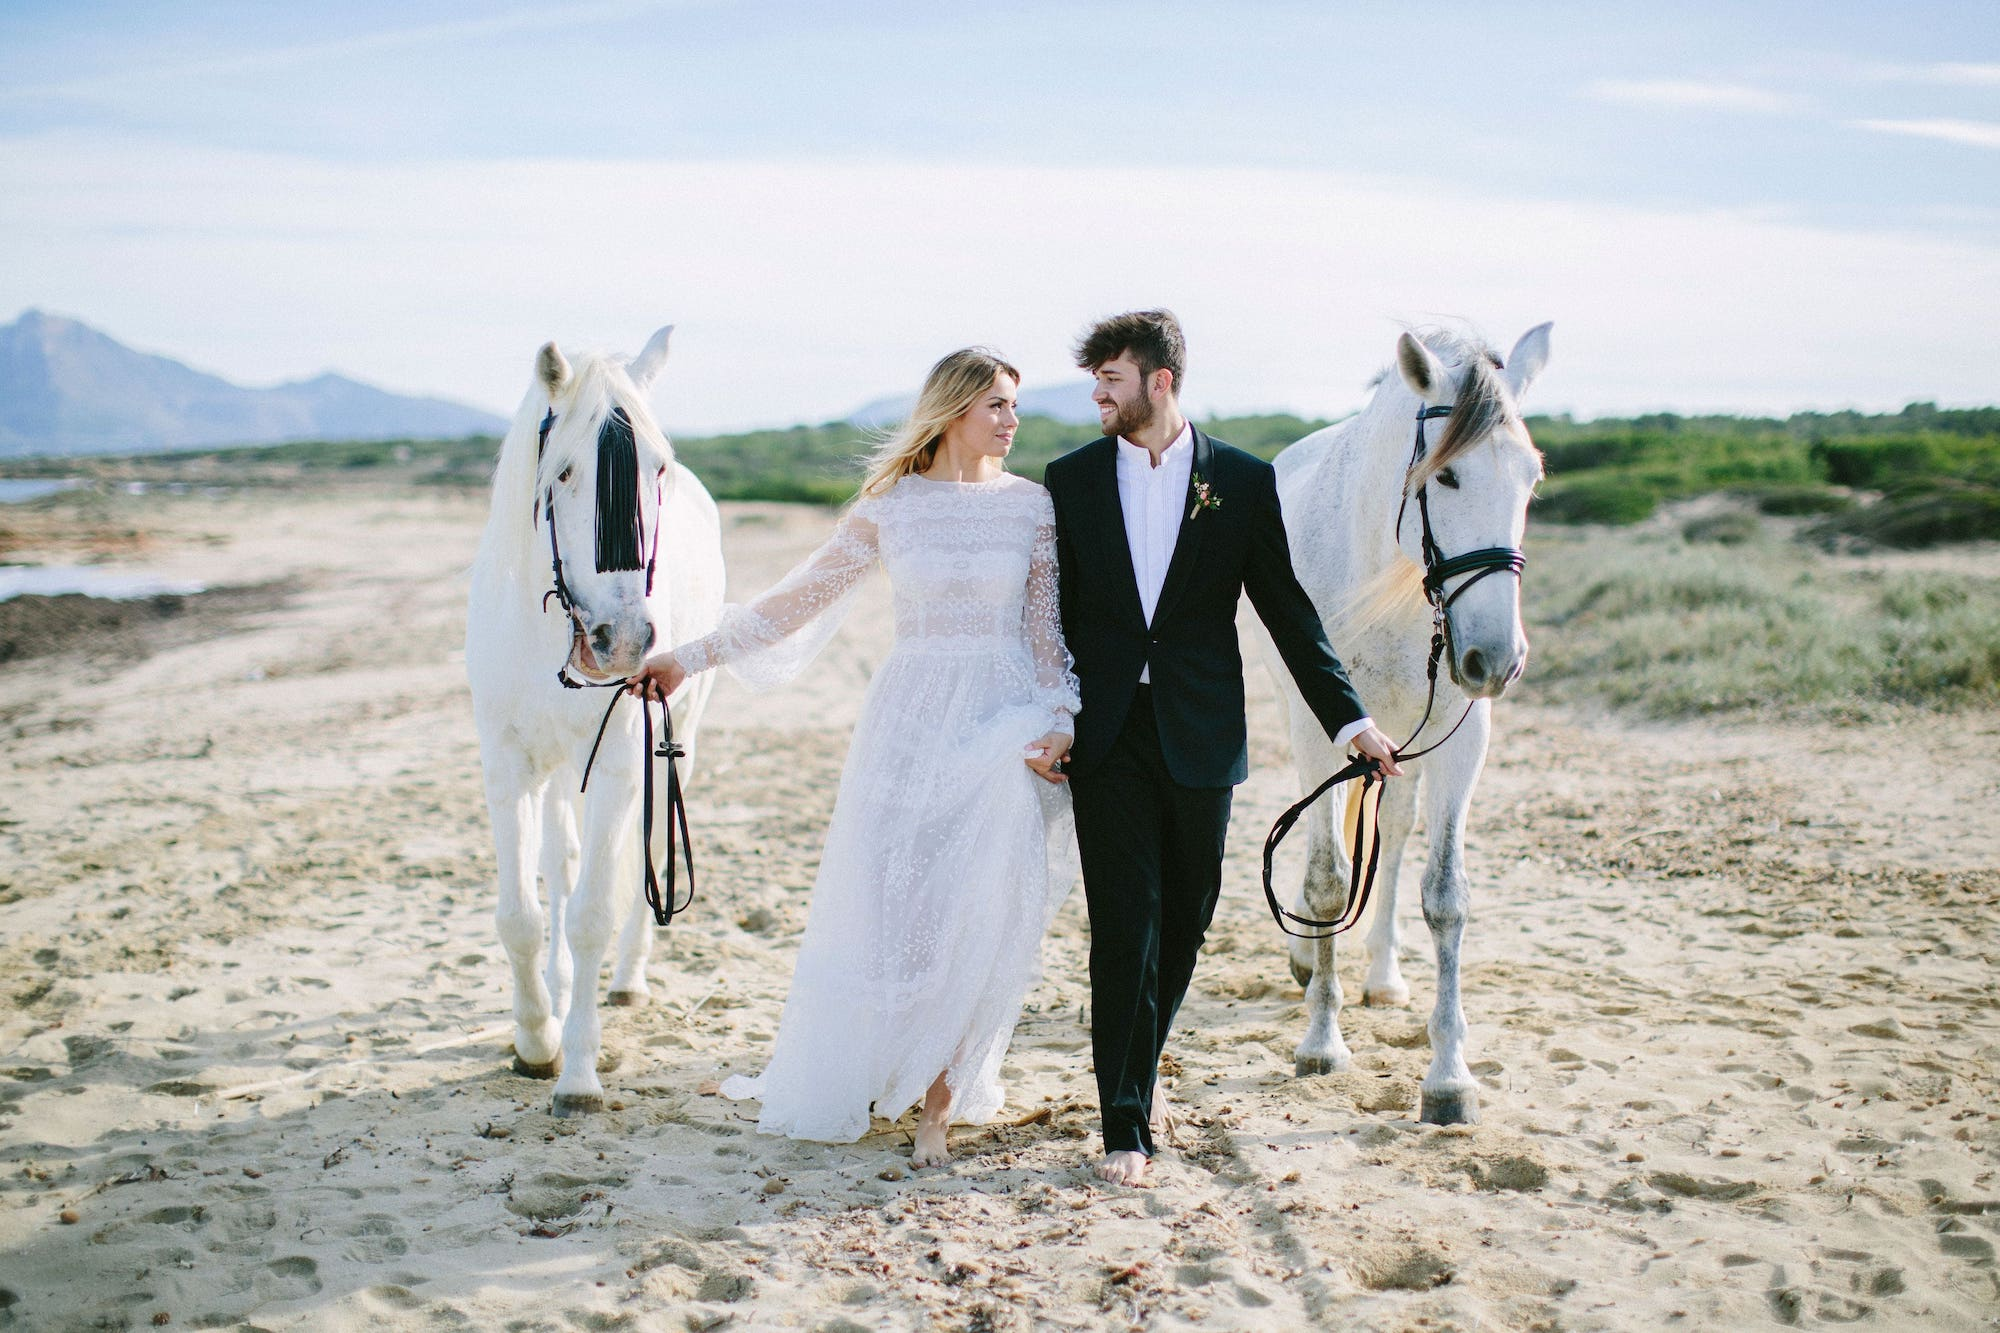 get married in an exclusive beach at Mallorca.